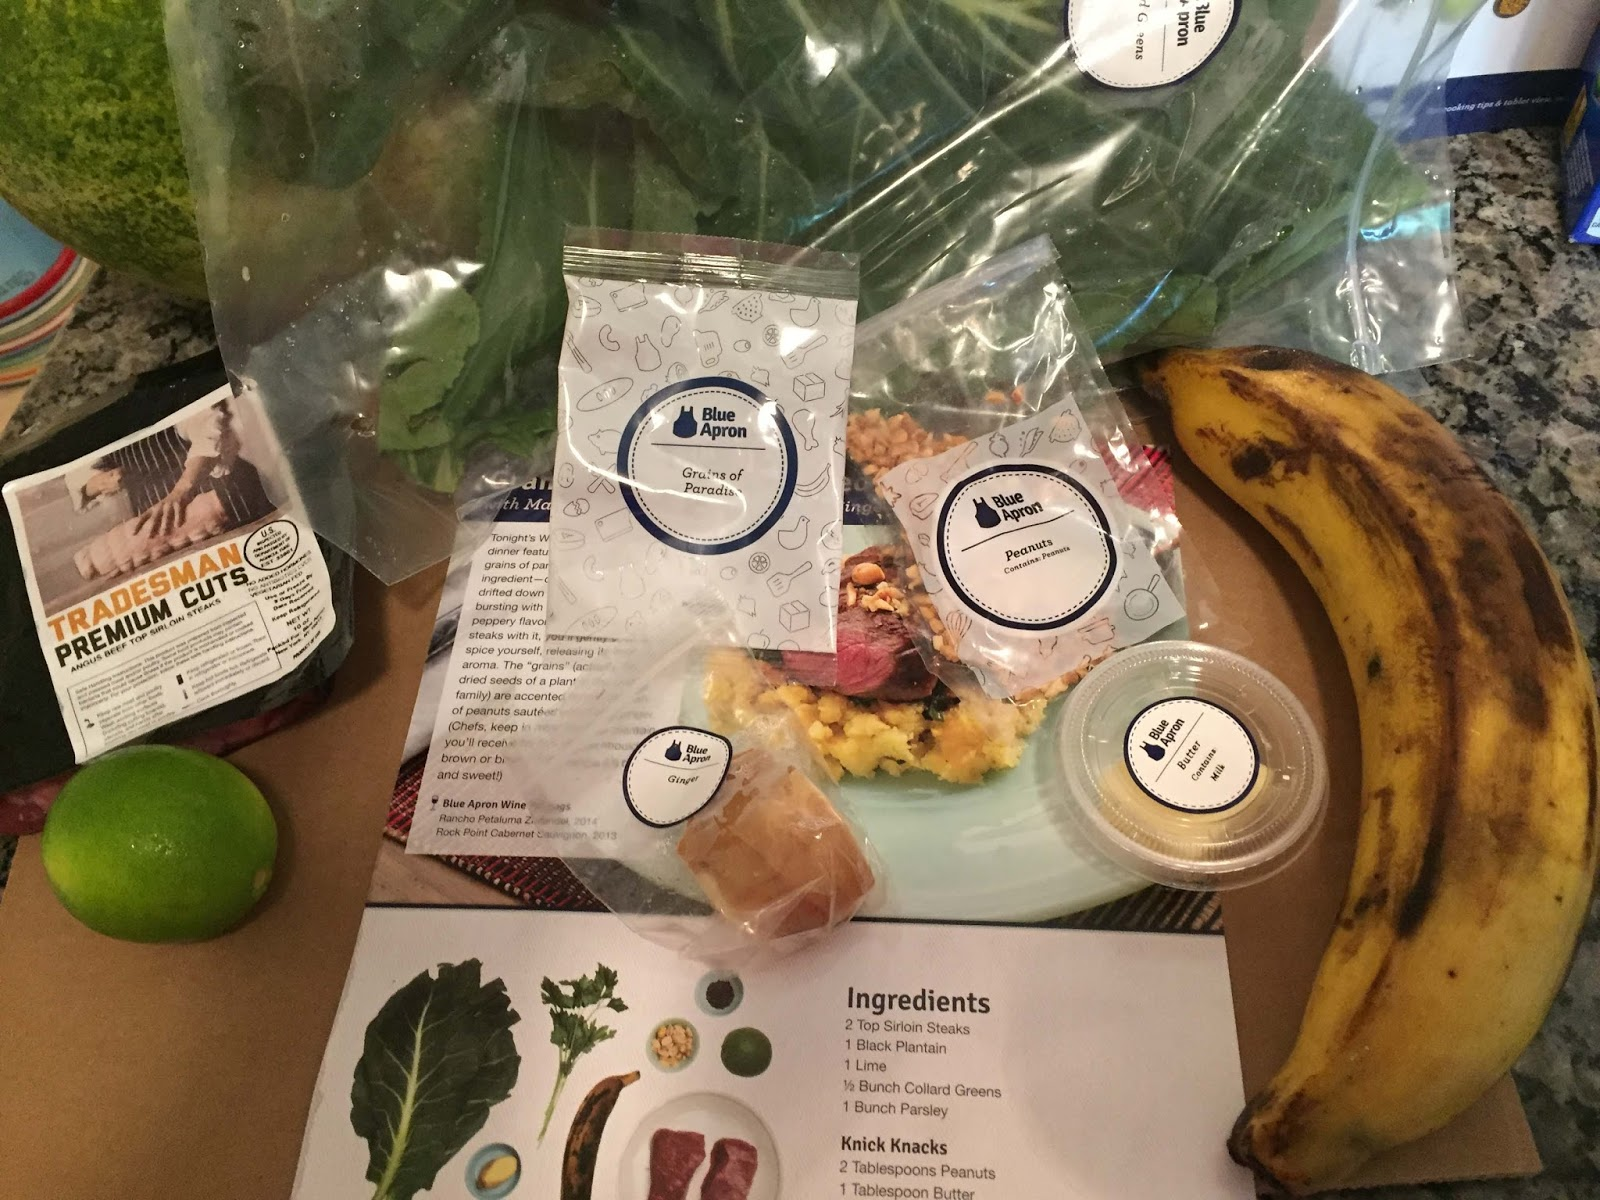 Blue apron omaha - I Have Eaten A Few Plantains Out And About But I Had Never Cooked One And The Trial Spice In This Go Round Was Grains Of Paradise